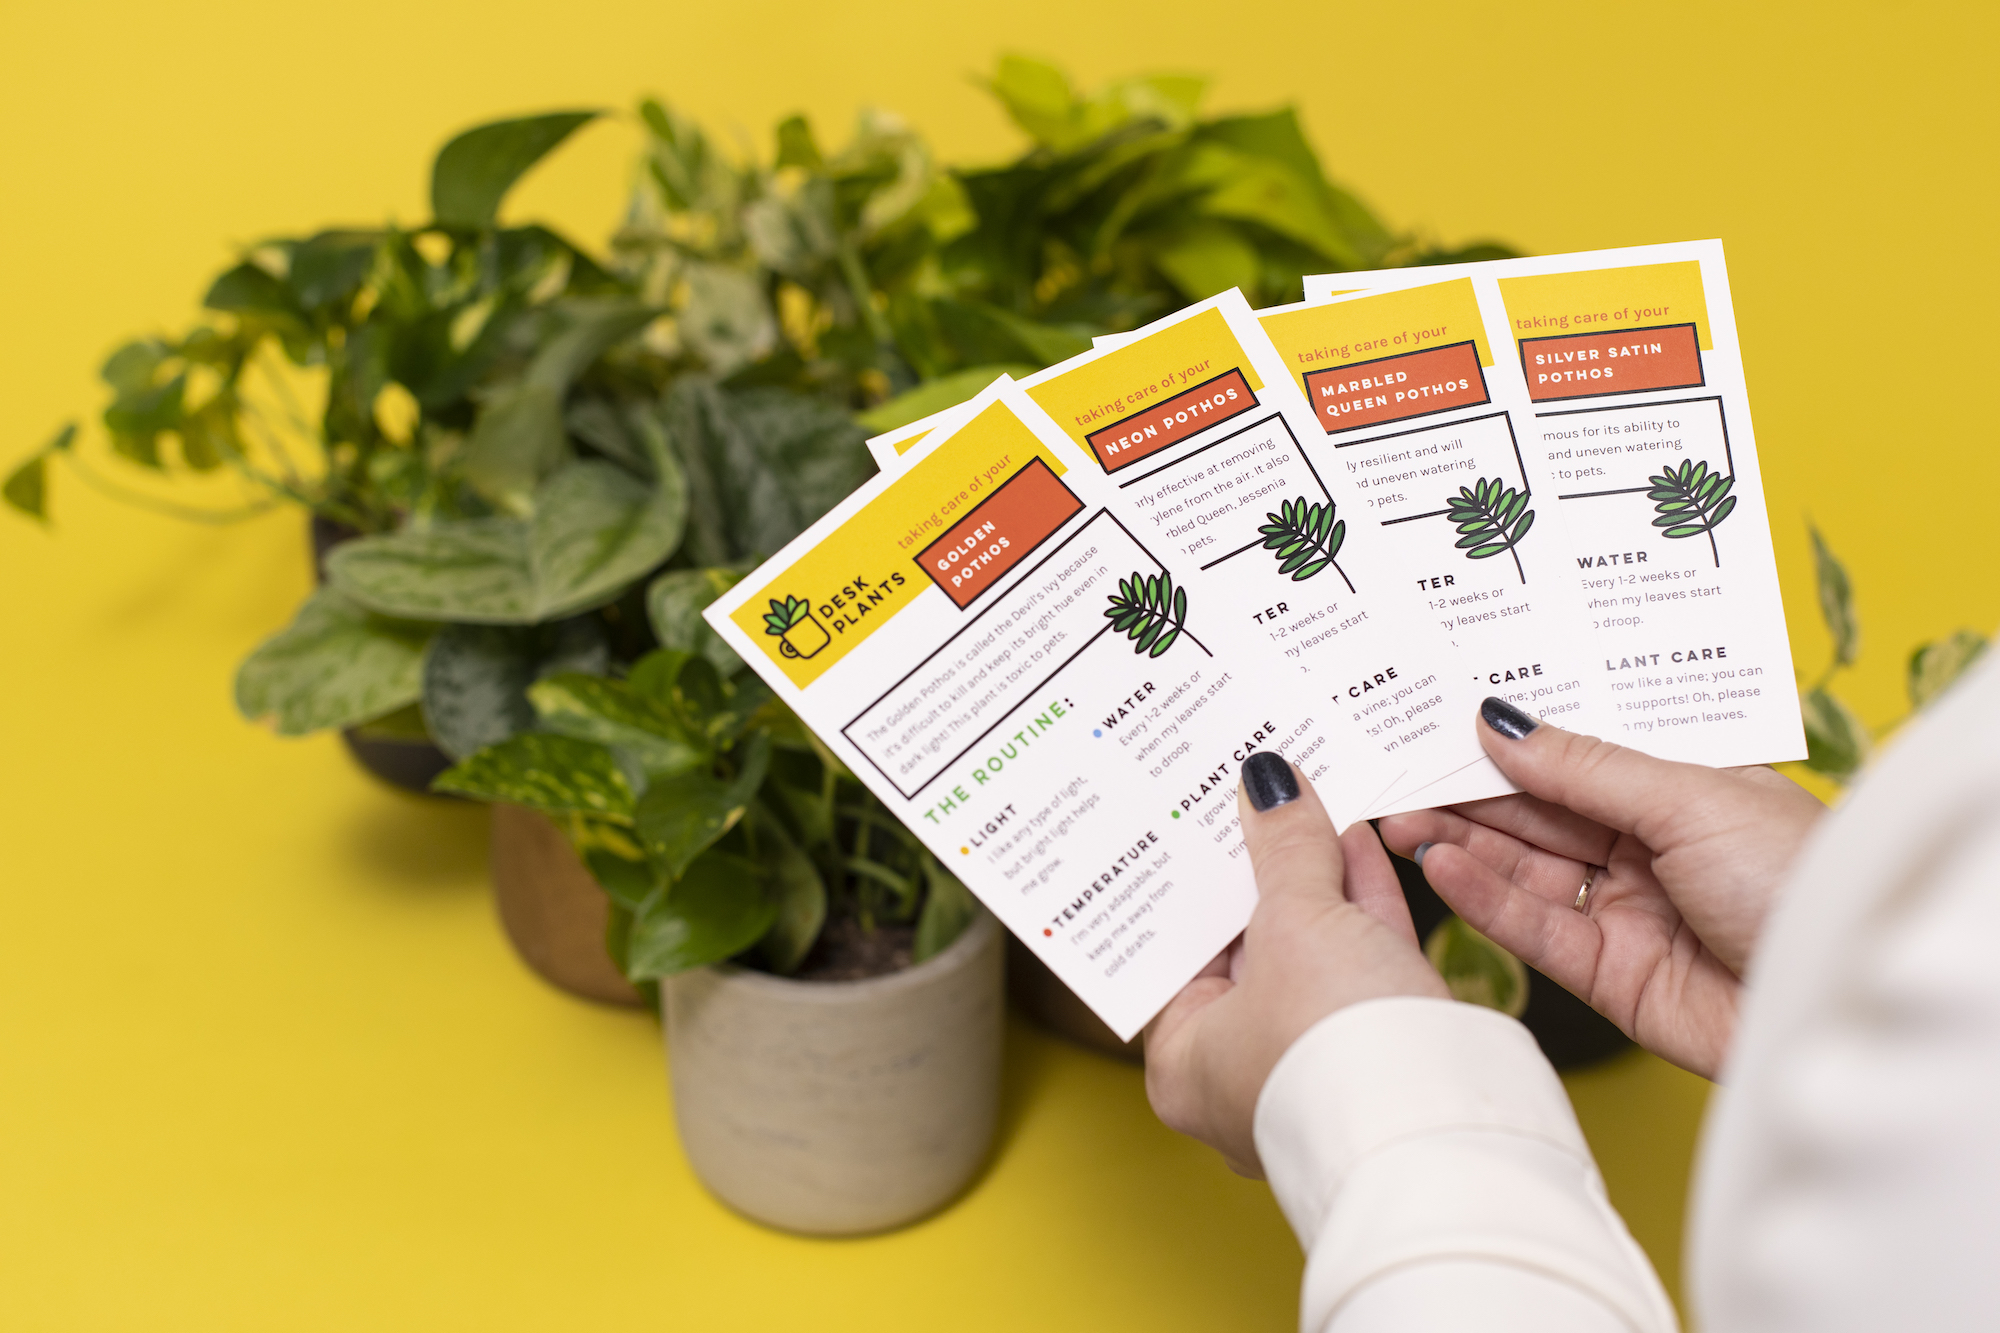 Simple care cards are given with each plant. The card reviews the plant's needs for water, light, temperature, and has Desk Plants' contact information.